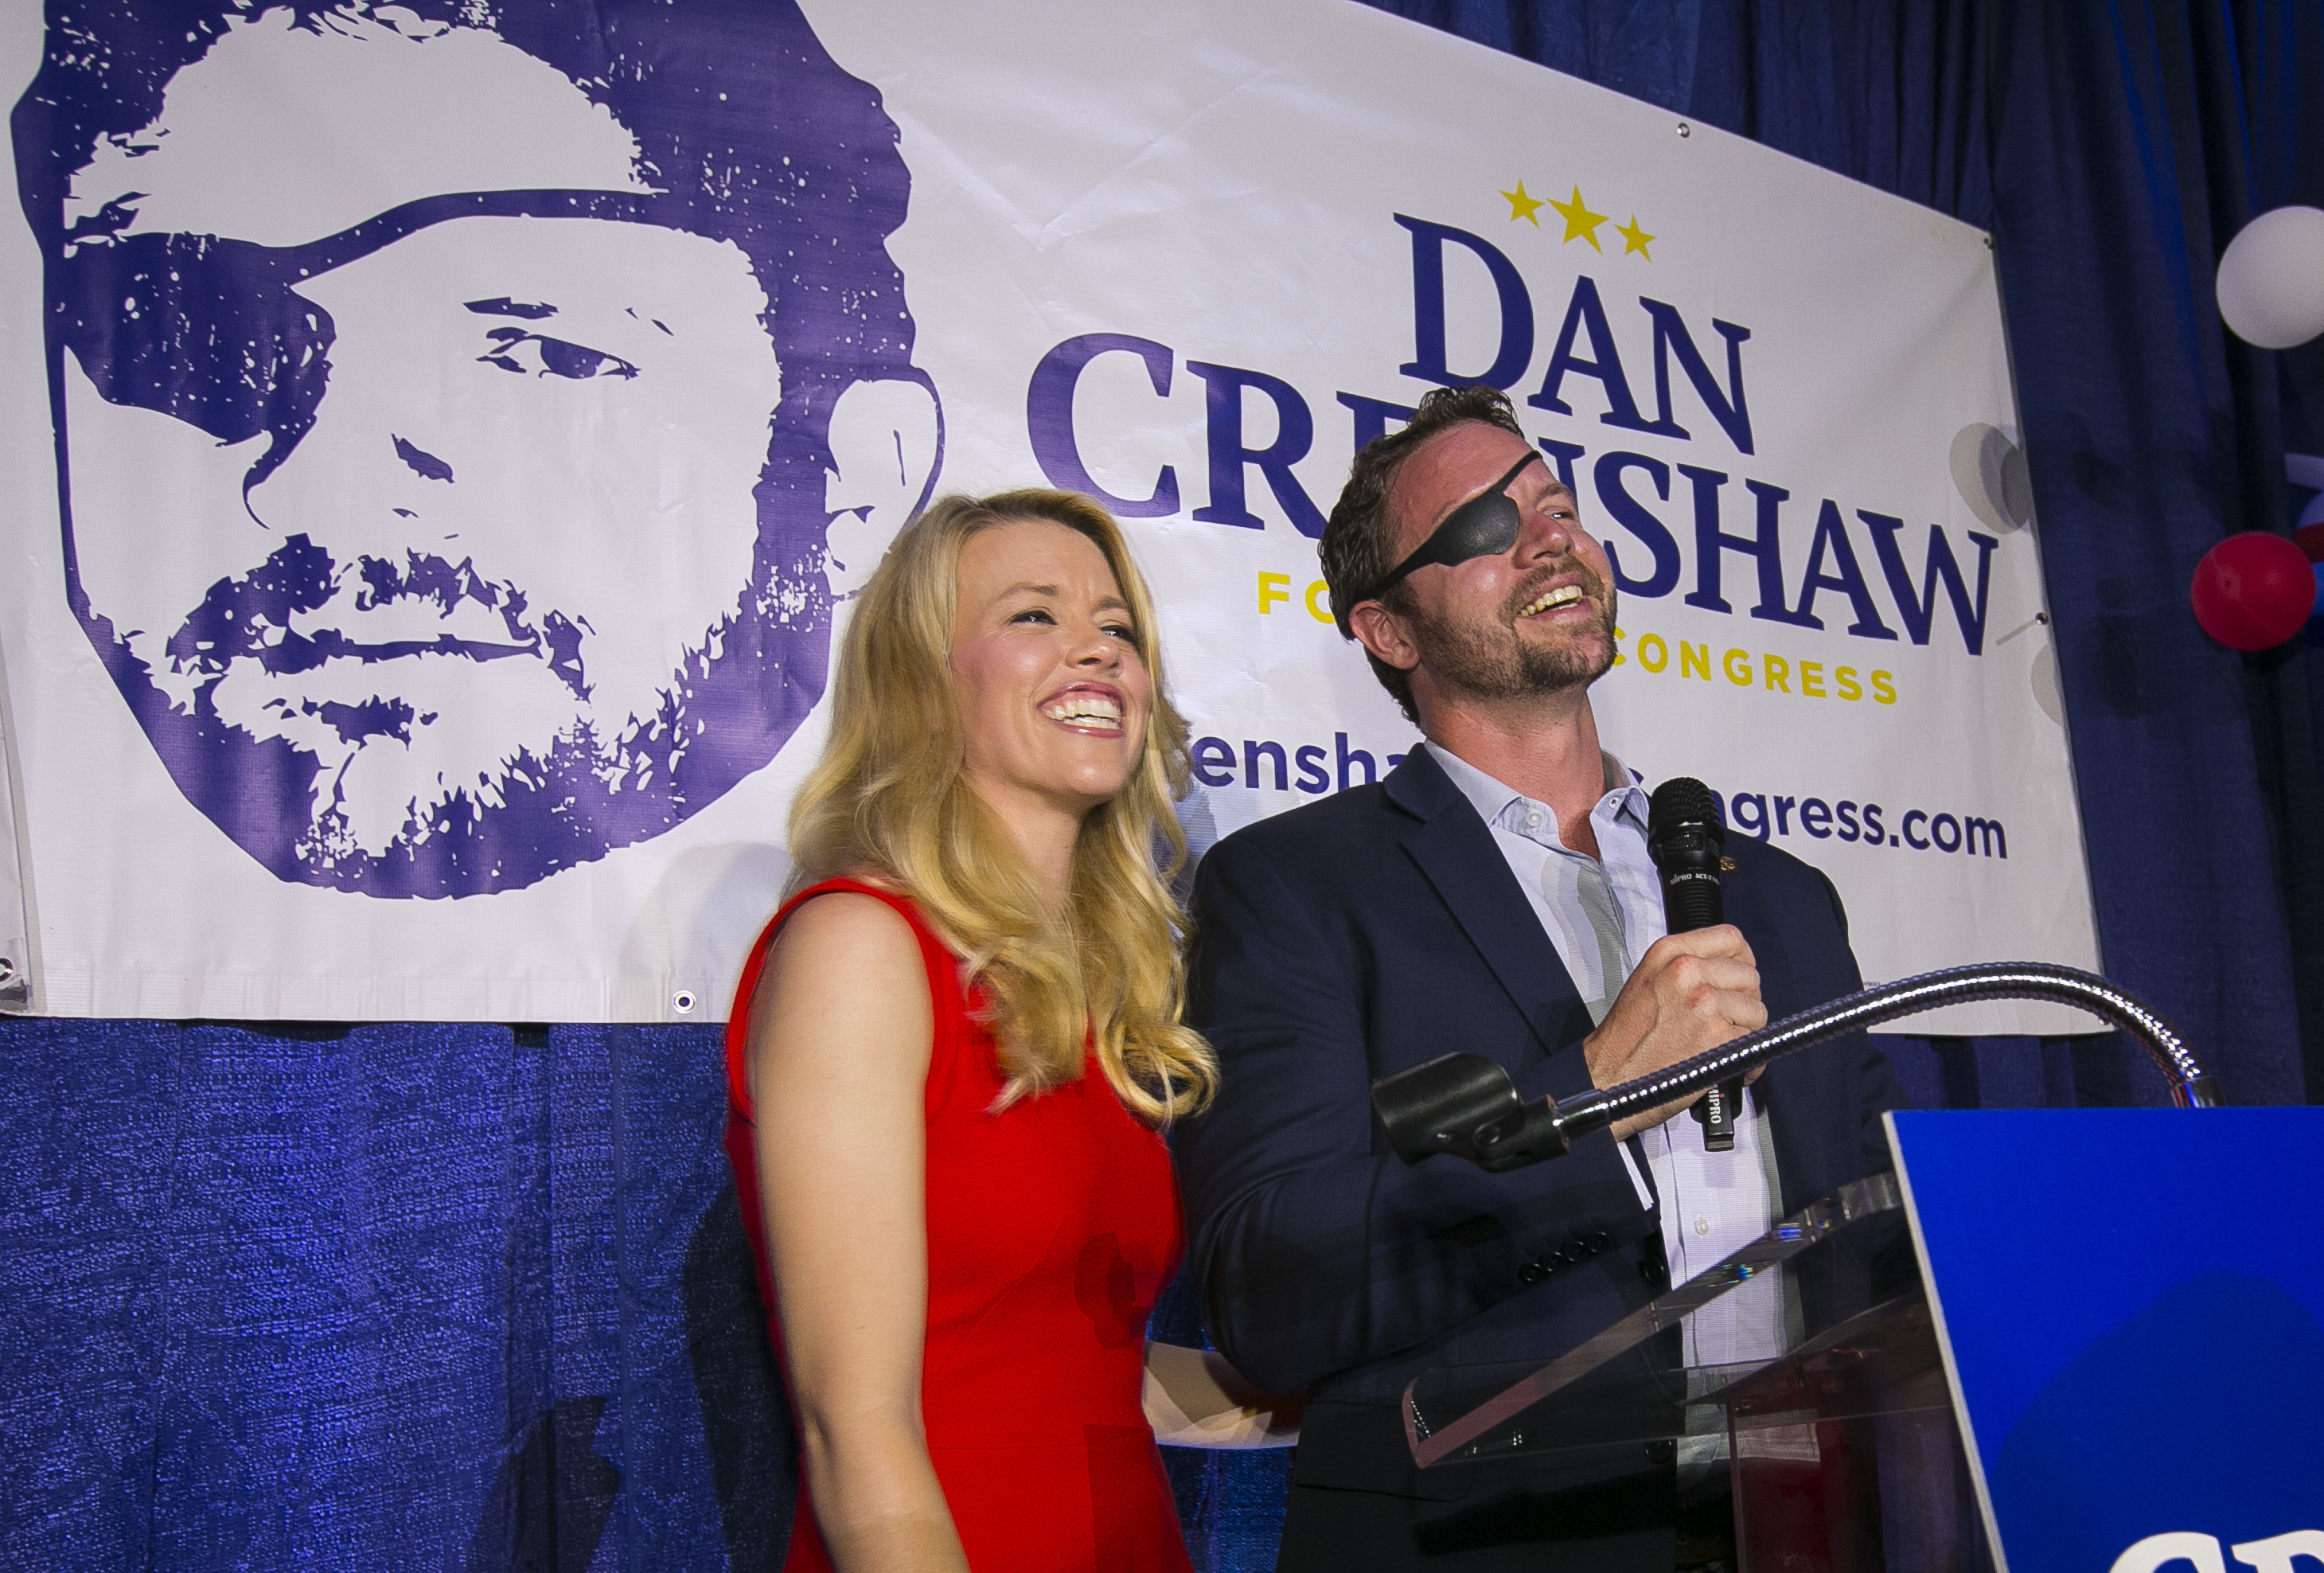 Crenshaw — shown with his wife, Tara, at his primary victory — lost an eye in Afghanistan.